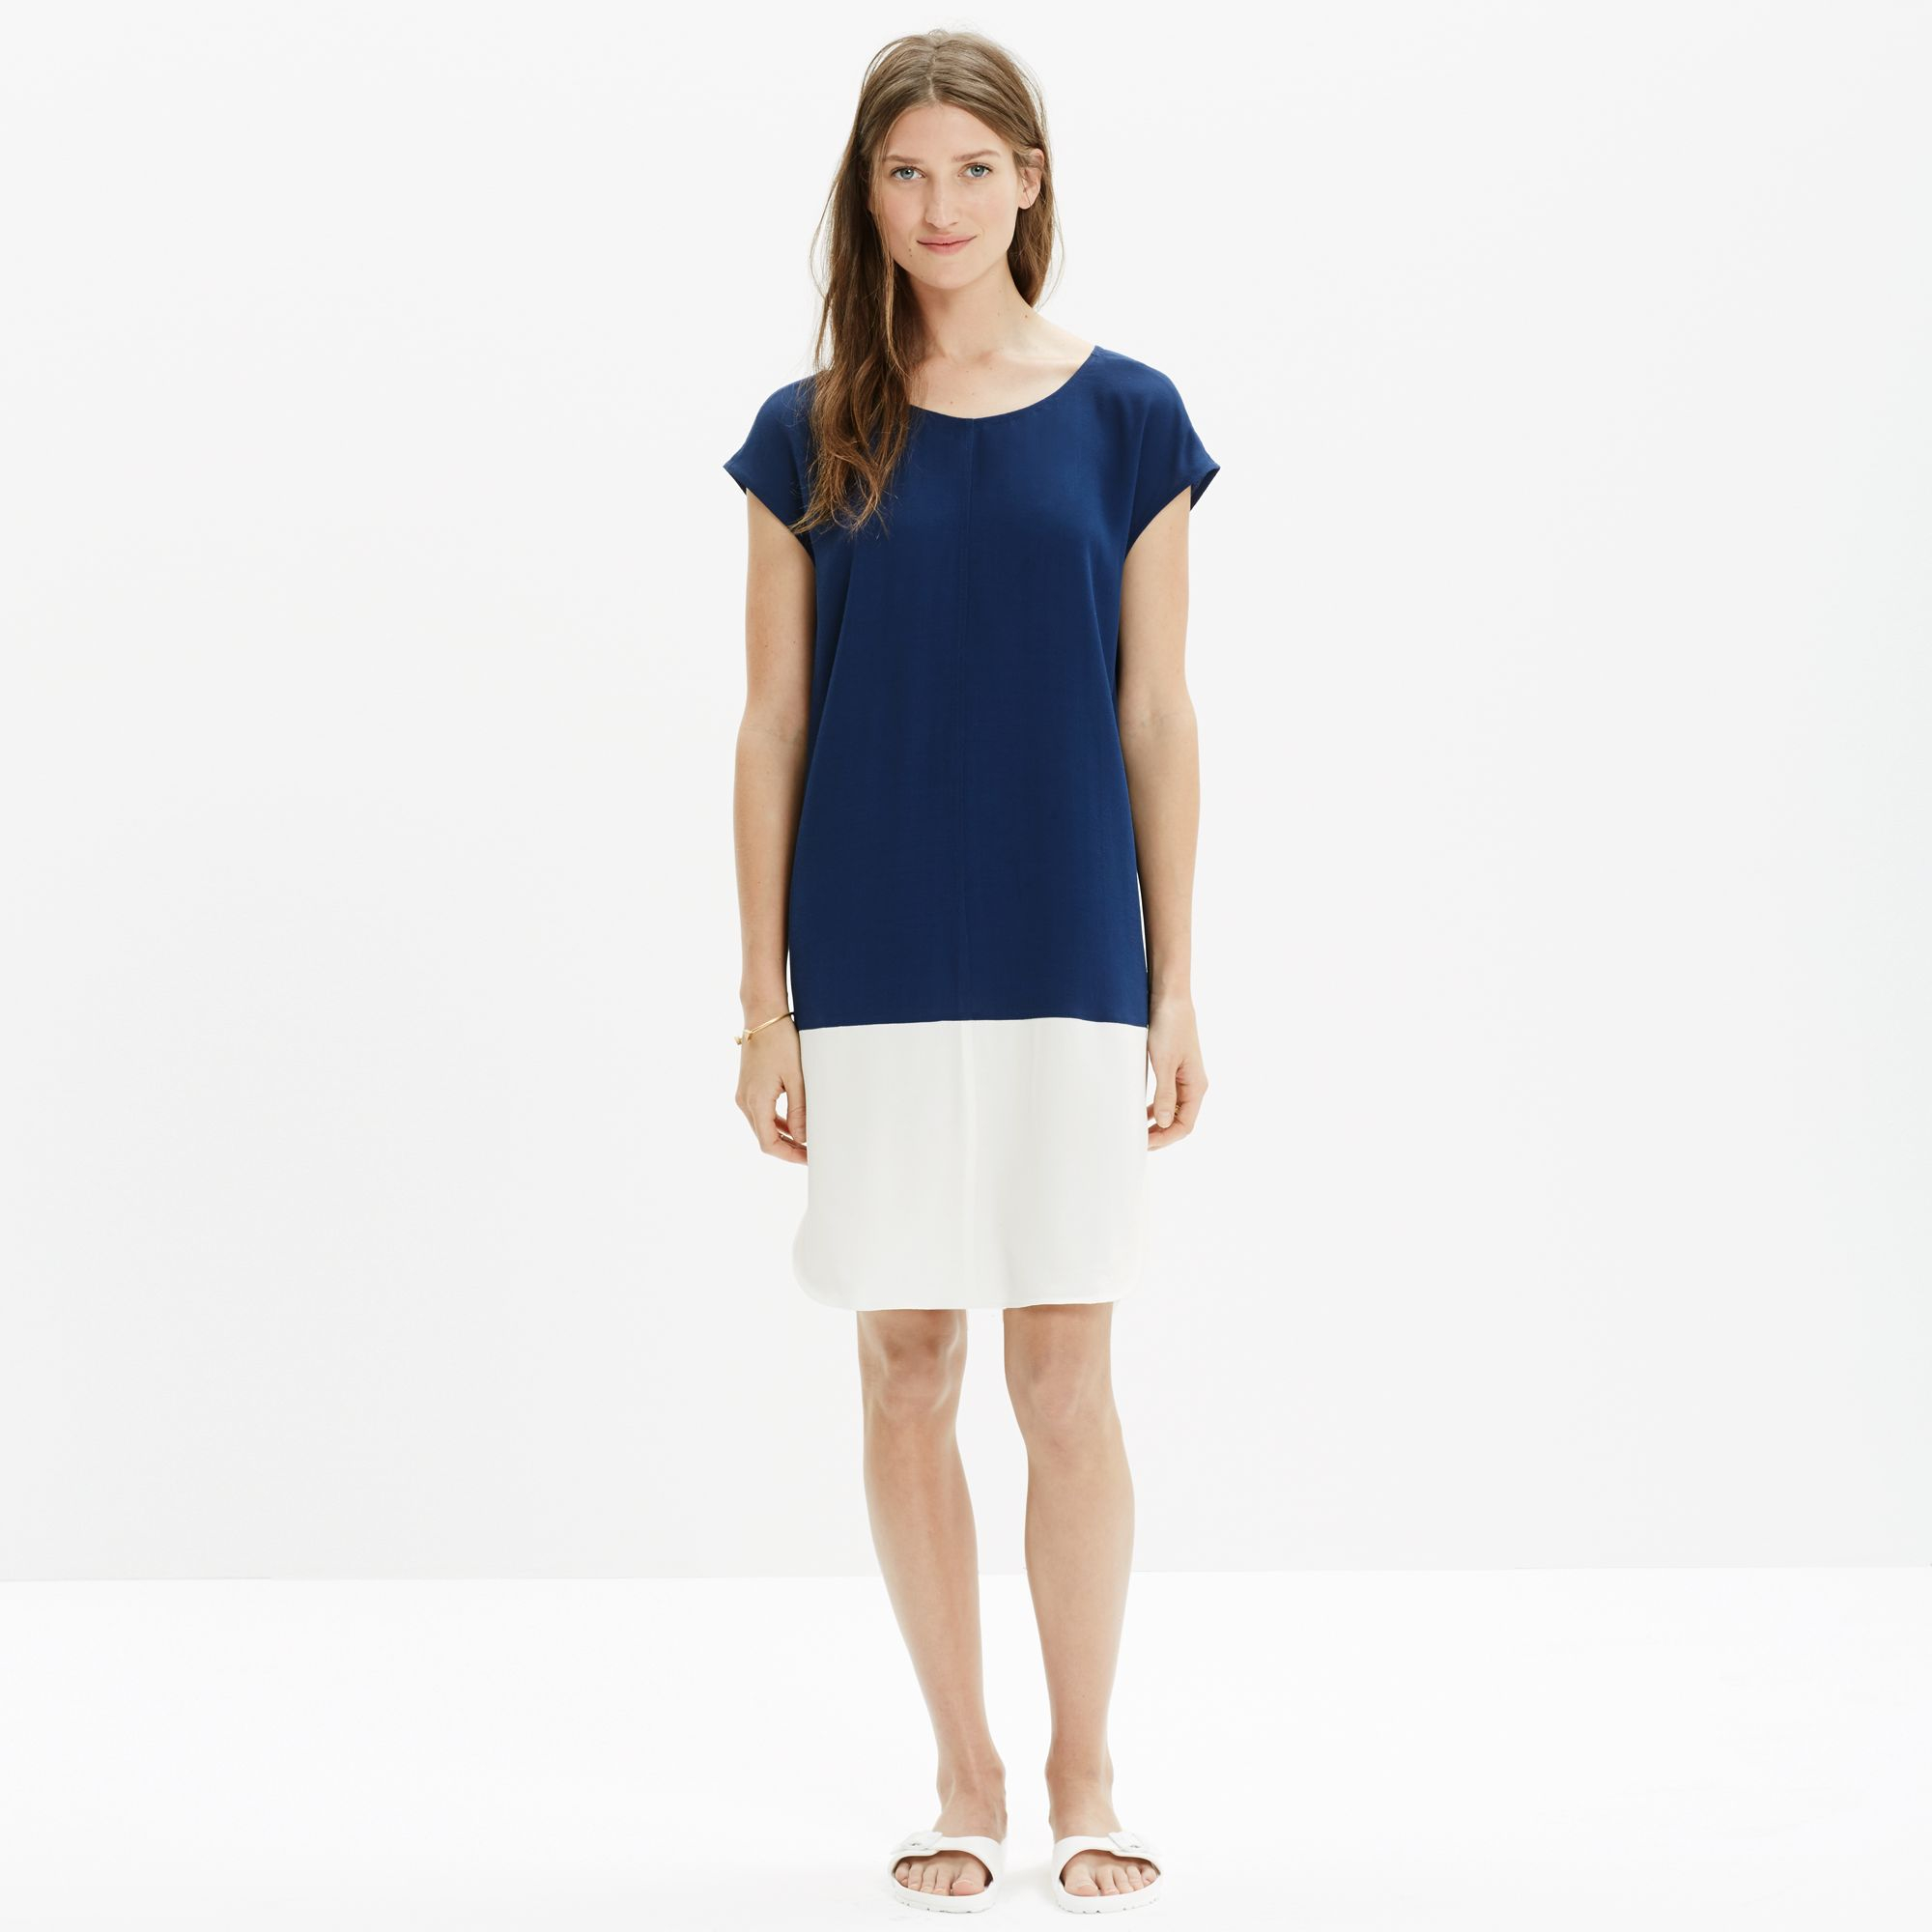 beb45e5e6e4 Madewell Layout Tunic Dress In Colorblock in Blue - Lyst